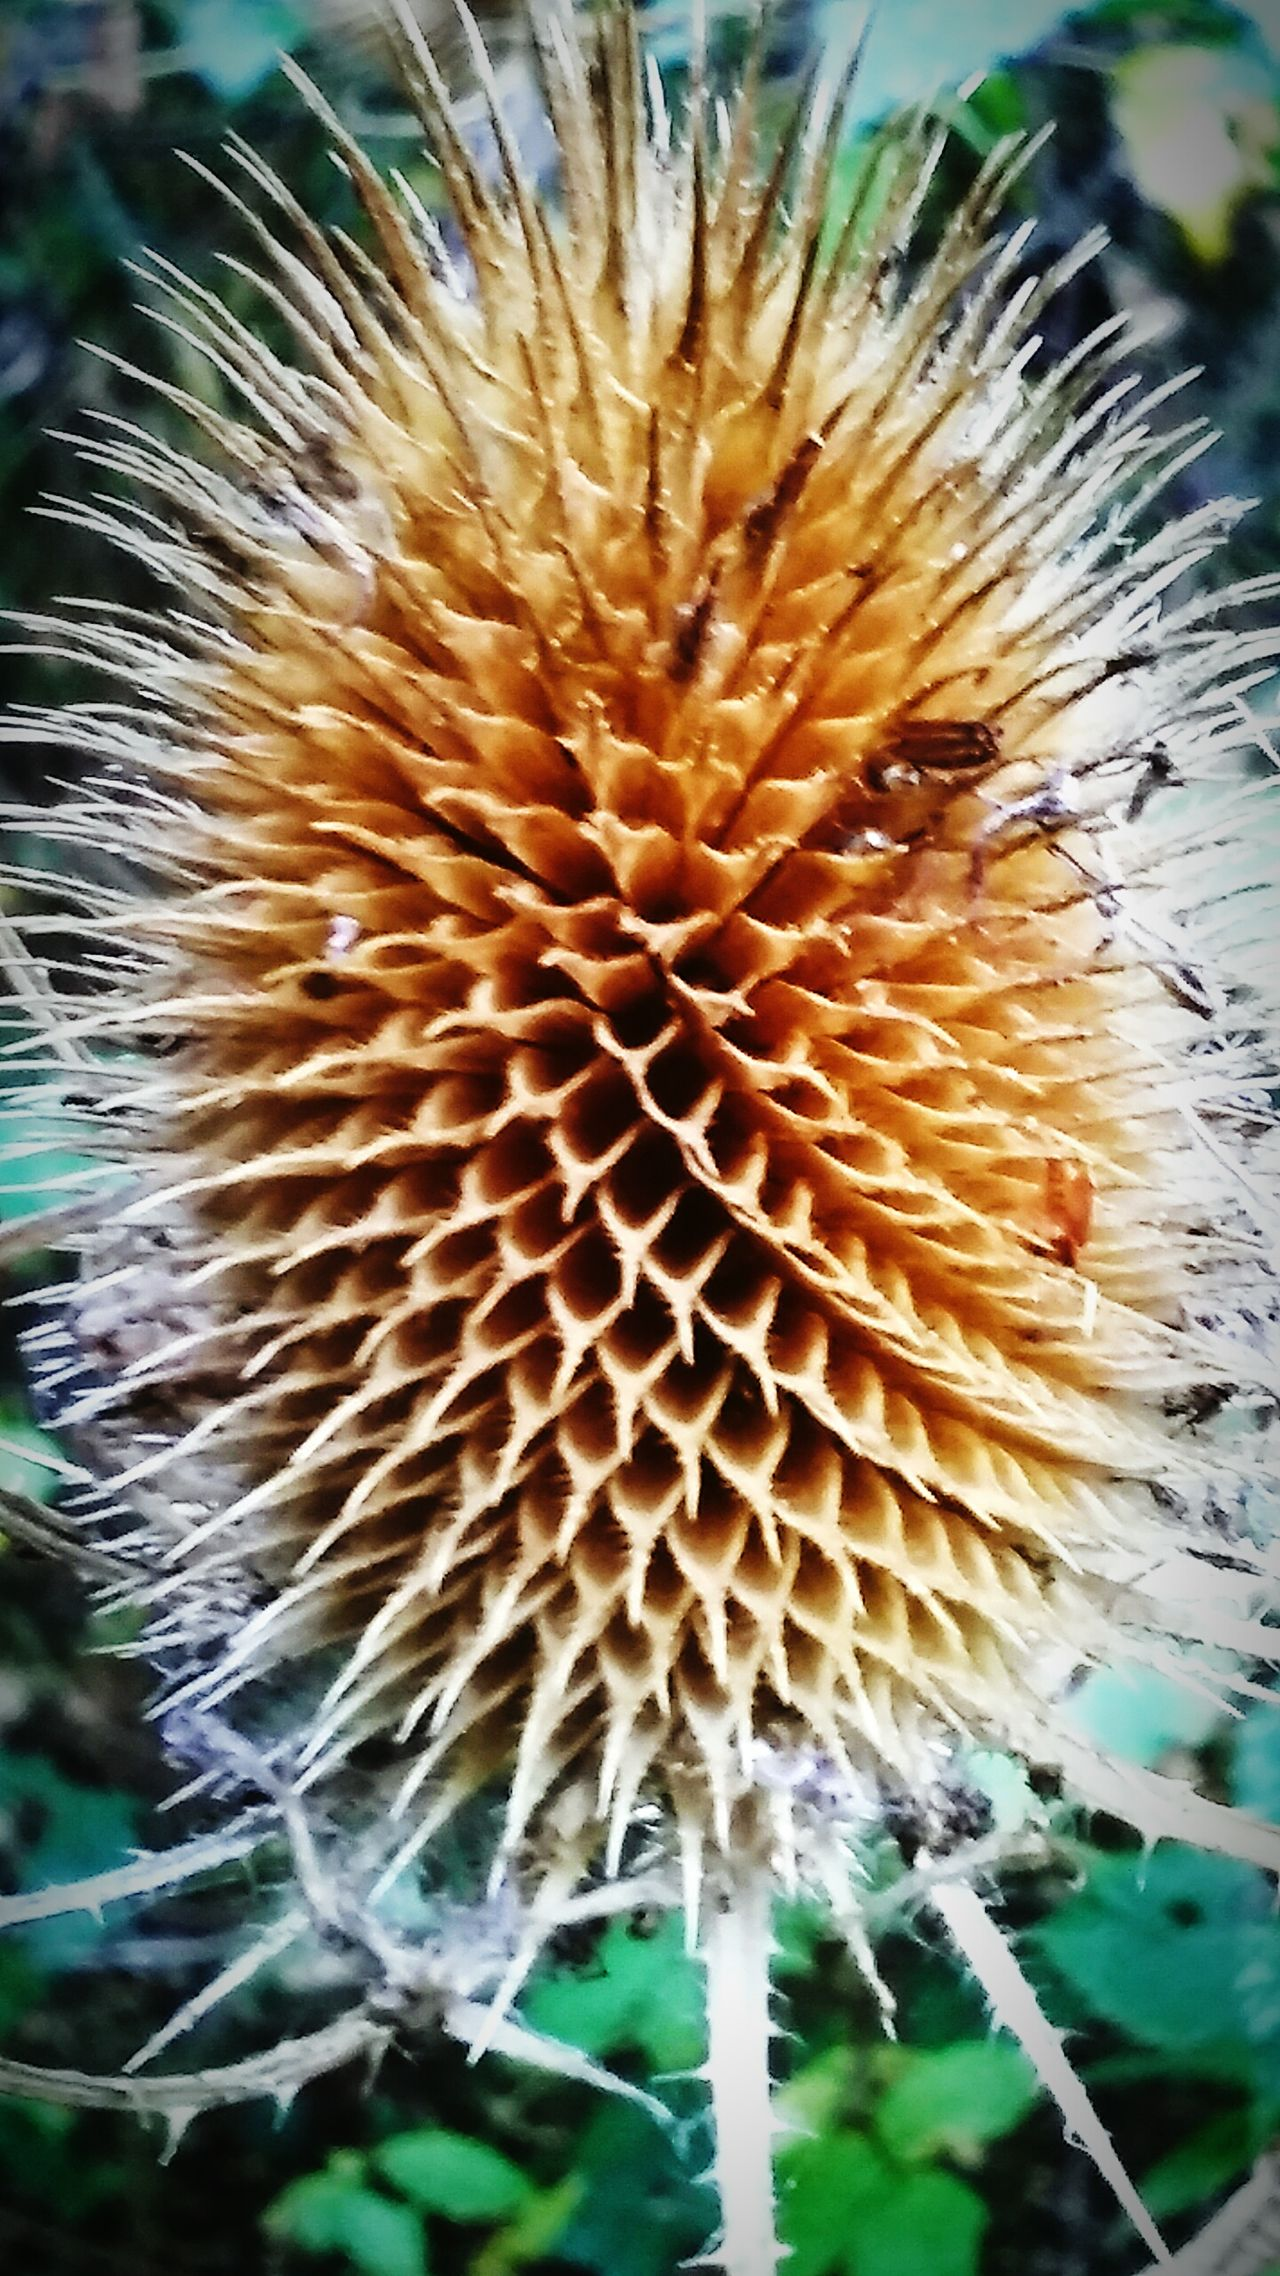 Flower Head Thorn Spiked Close-up Sharp Cactus Plant Growth Danger Nature Focus On Foreground RISK Beauty In Nature Single Flower Spiky Fragility Flower Flower Head Day Outdoors Botany